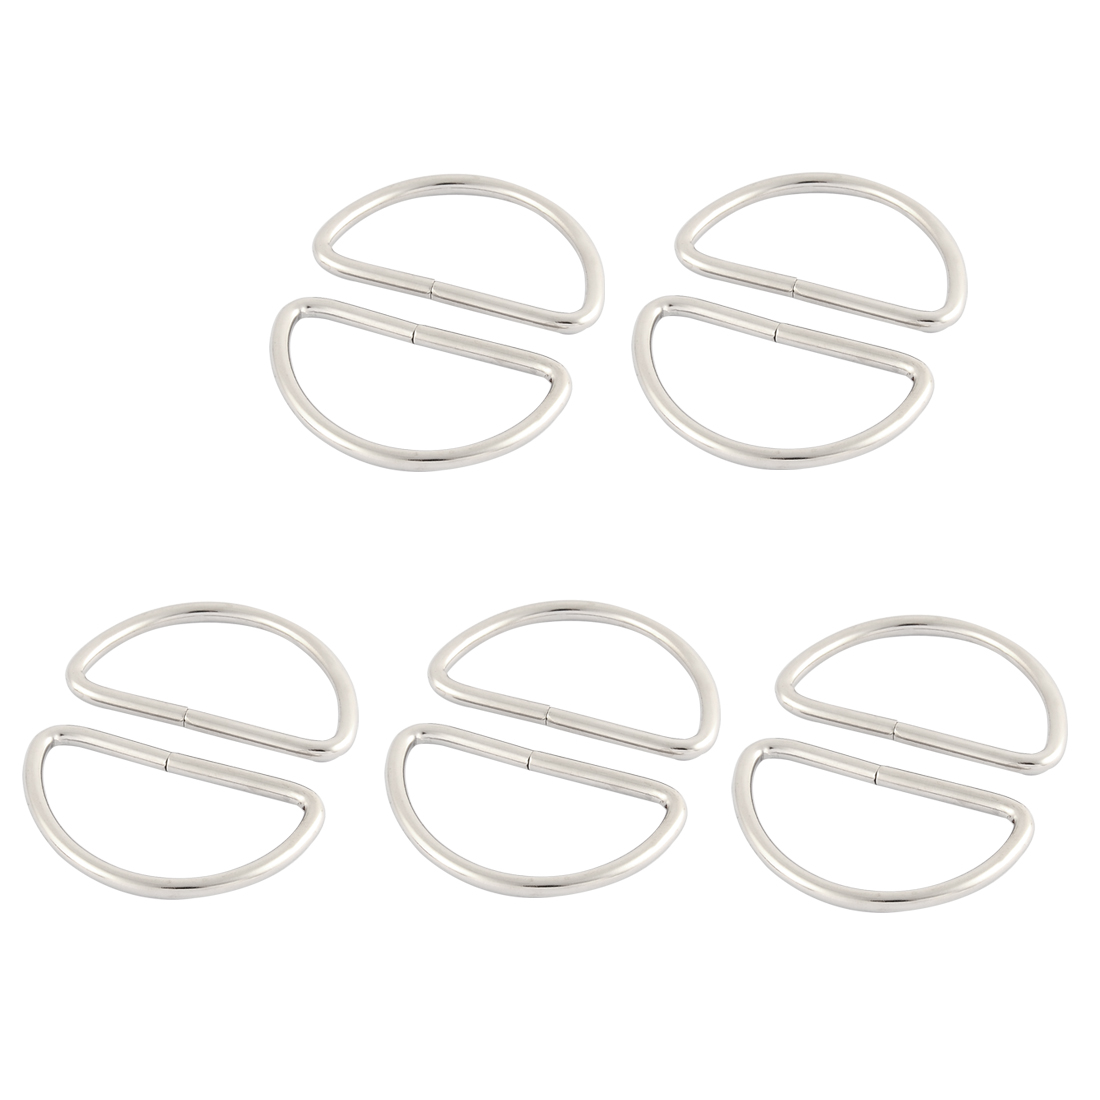 Metal Handbag Strap Belt Buckles Ring D Shaped Hooks Sliver Tone 10 Pcs